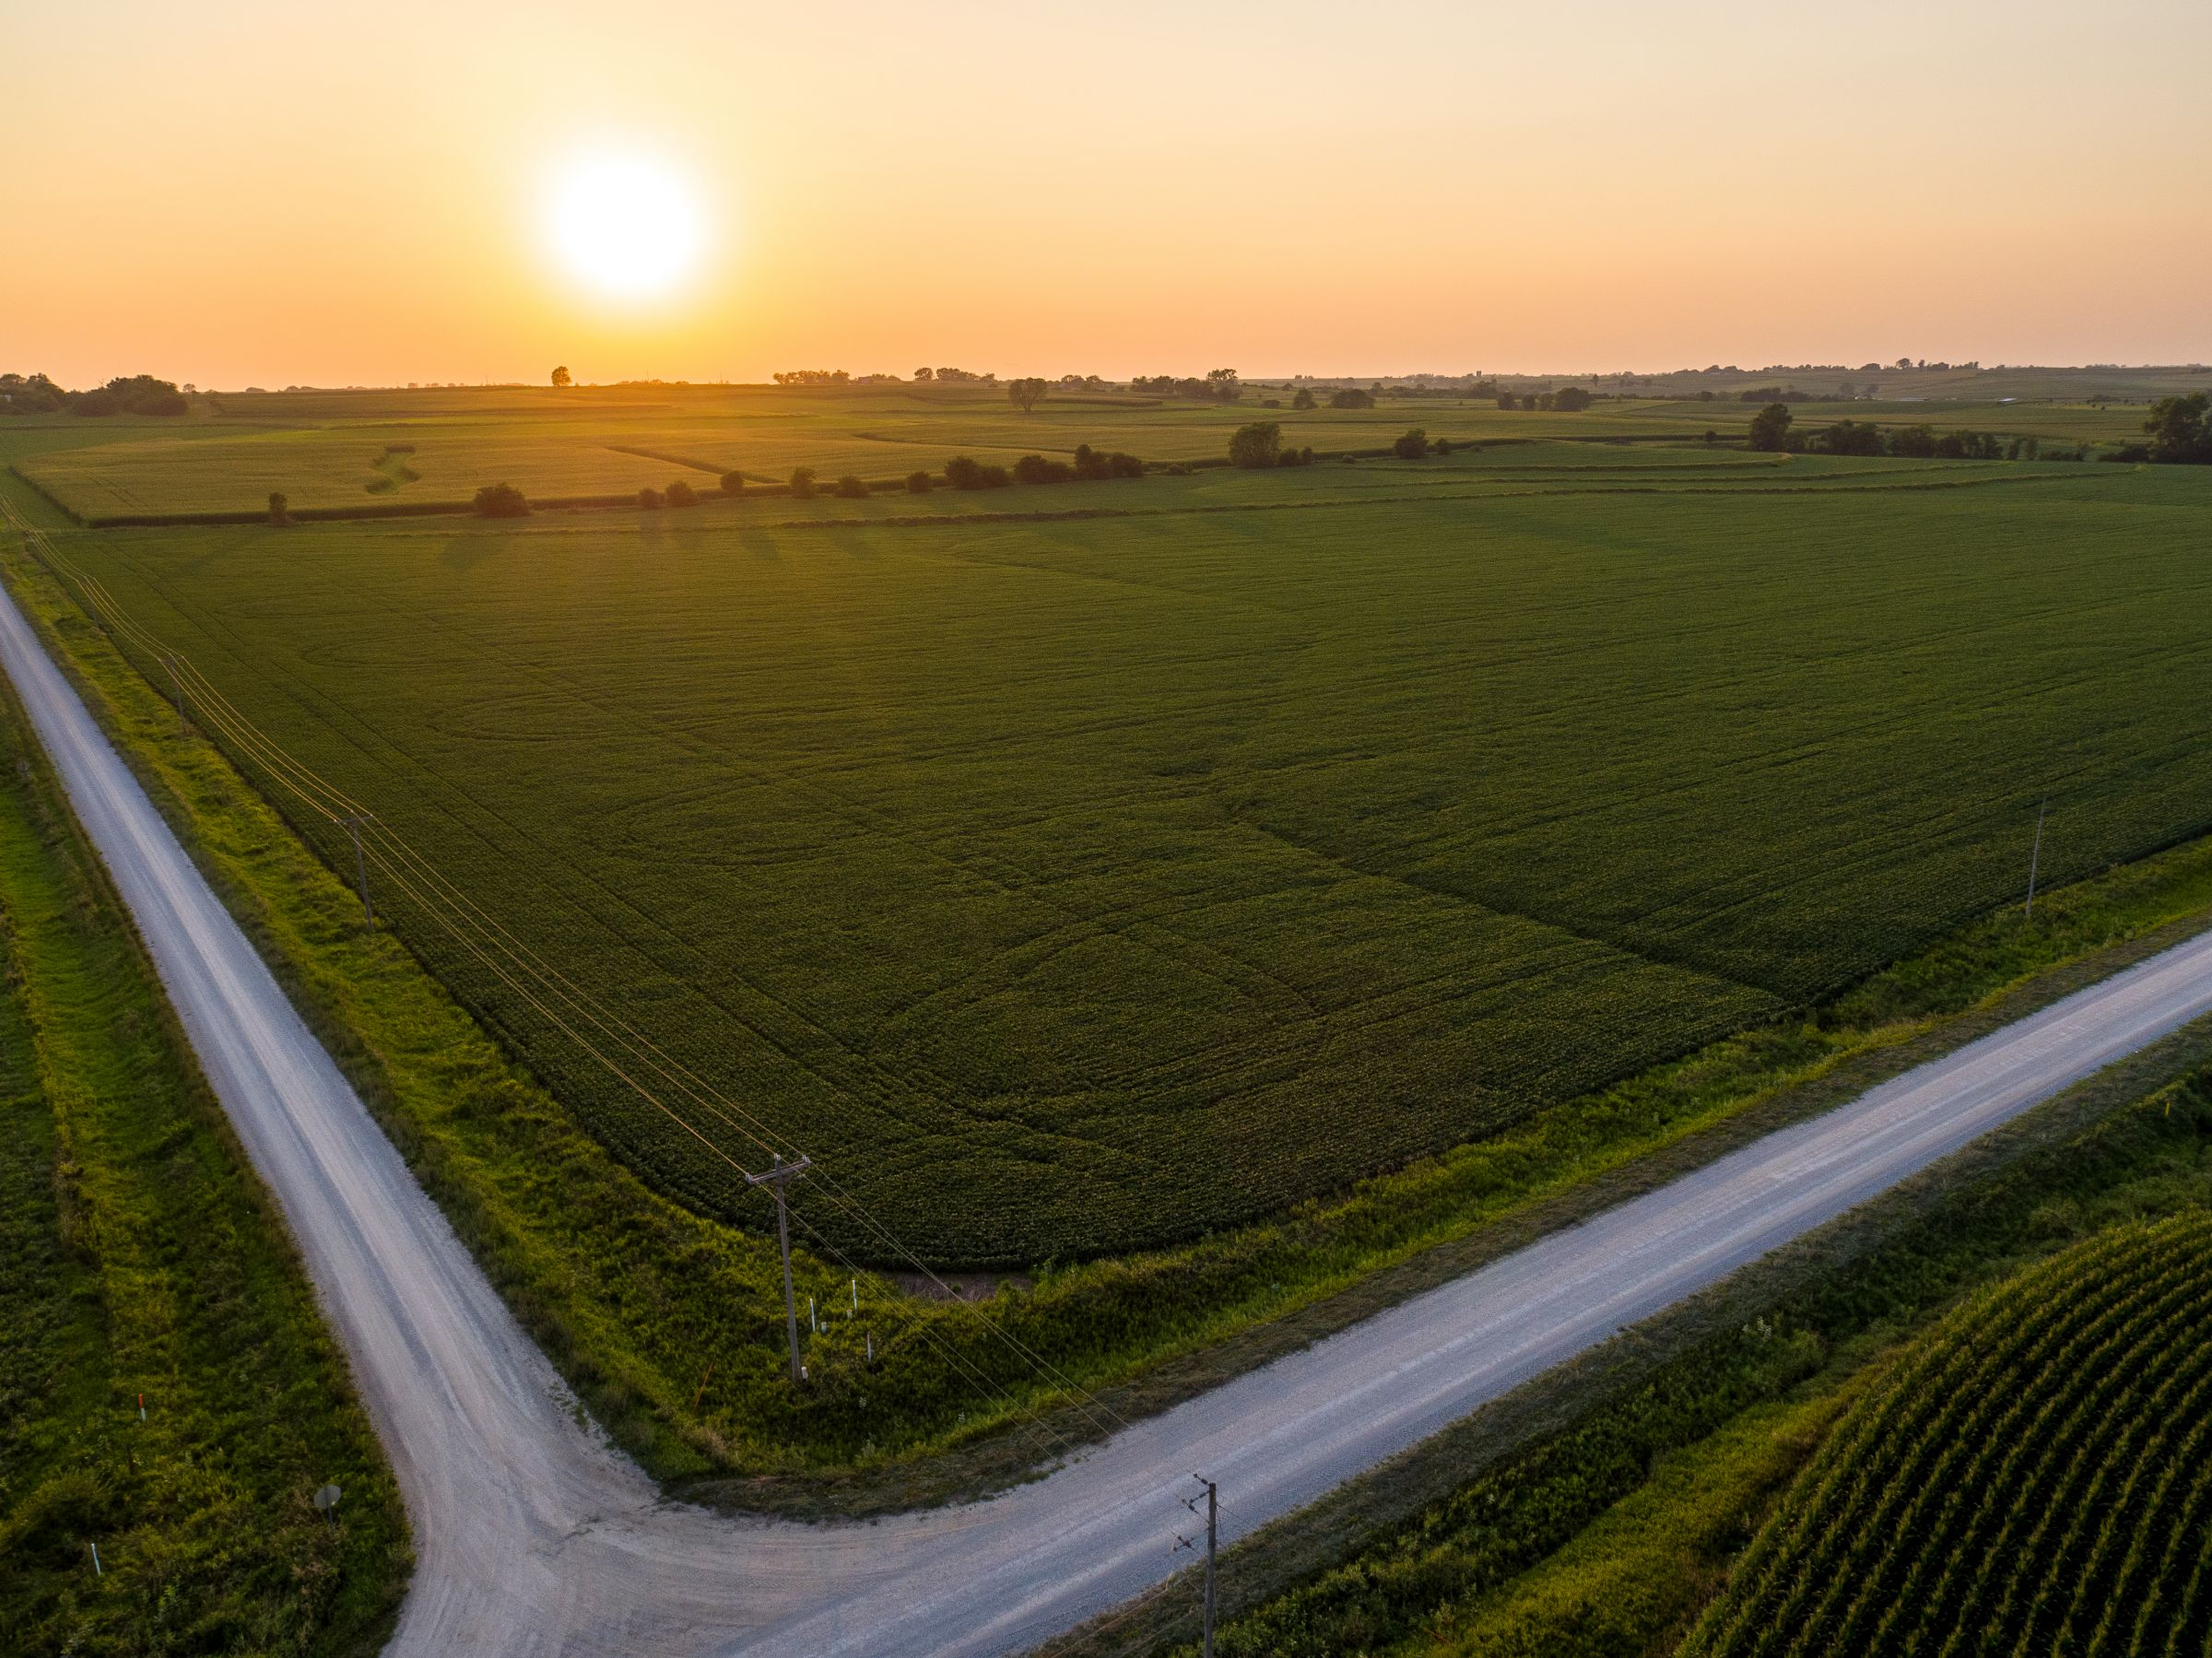 auctions-land-montgomery-county-iowa-703-acres-listing-number-15724-0-2021-09-07-151053.jpeg